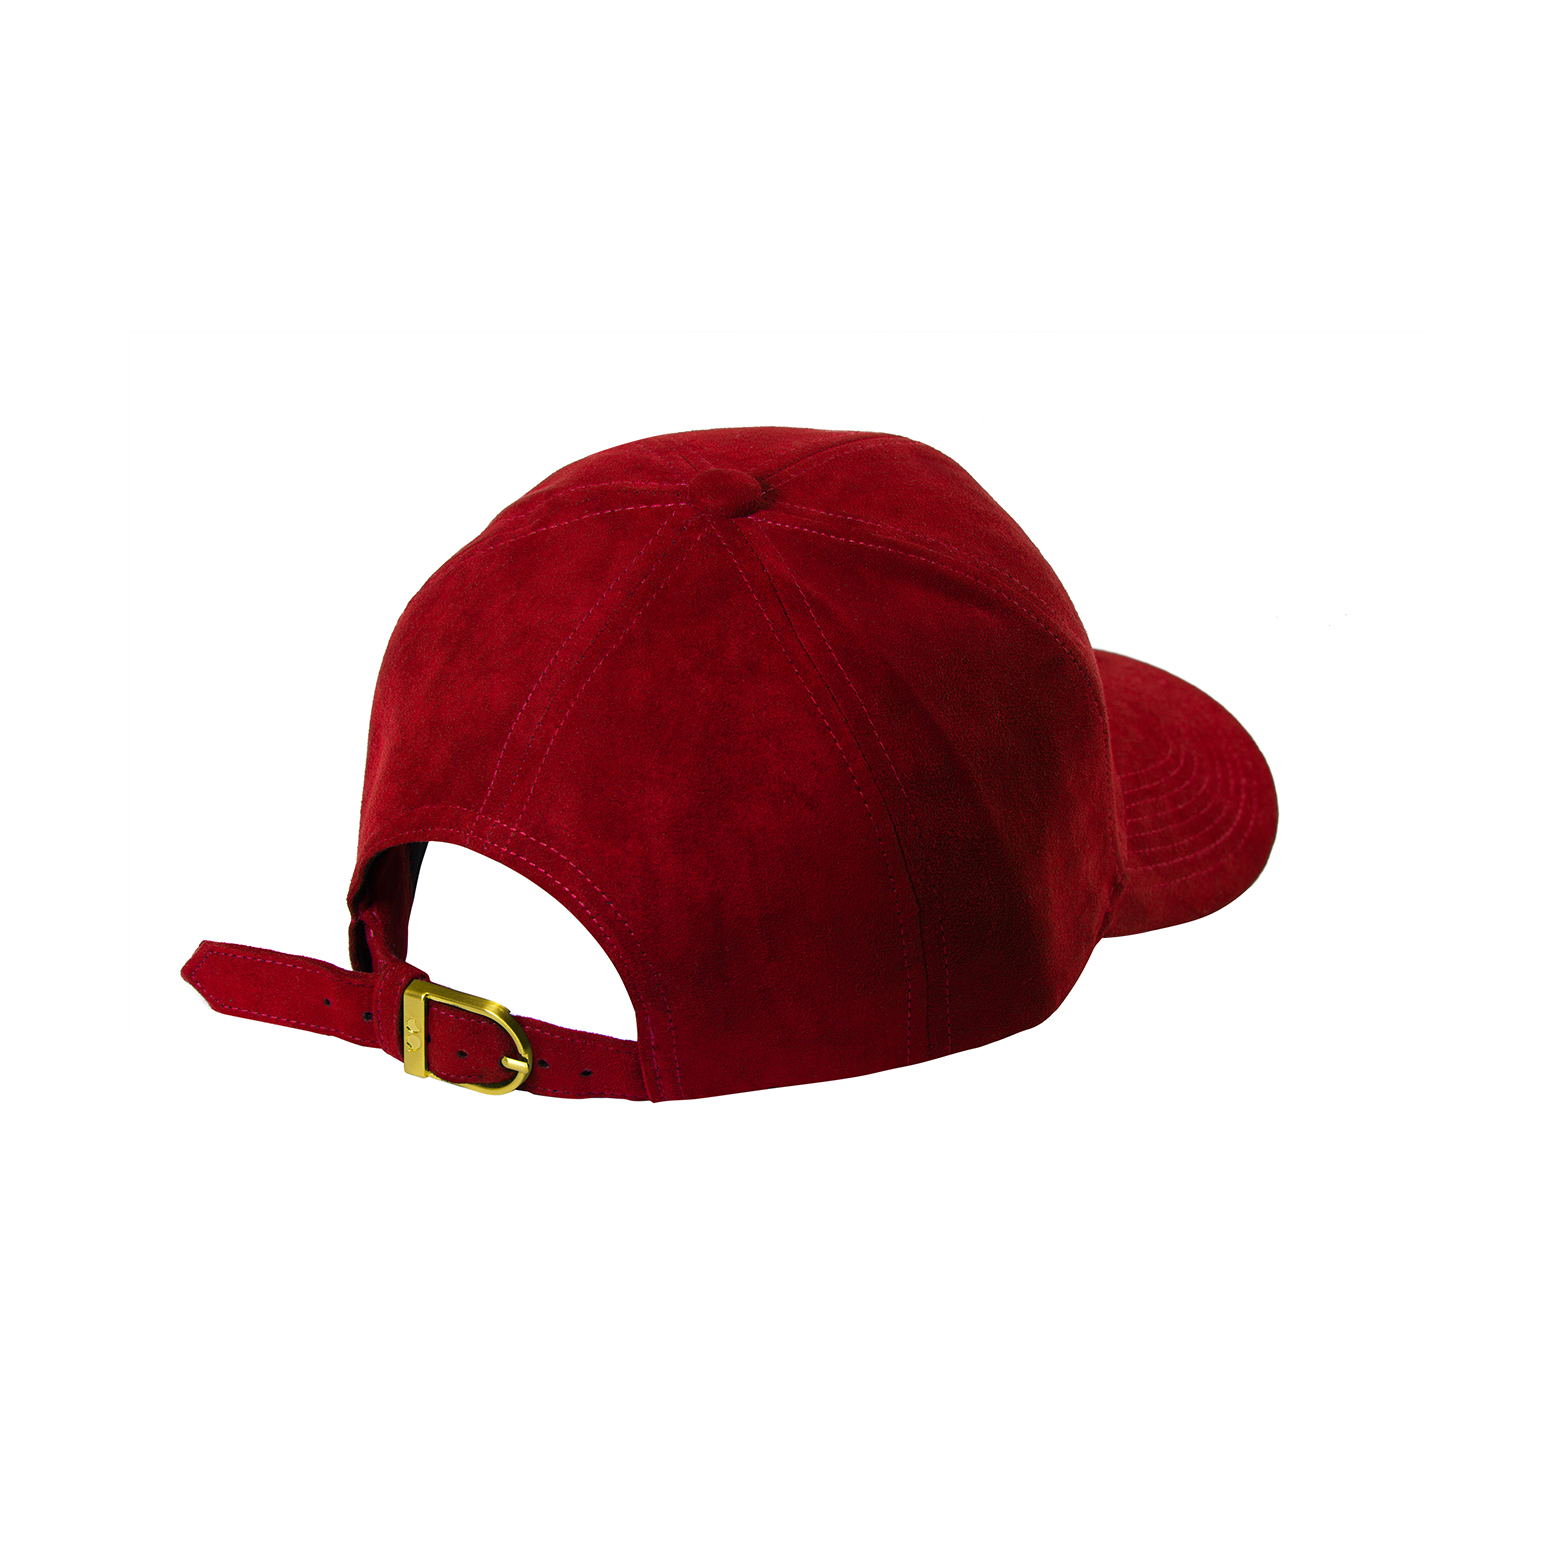 BASEBALL CAP RED SUEDE BACK SIDE